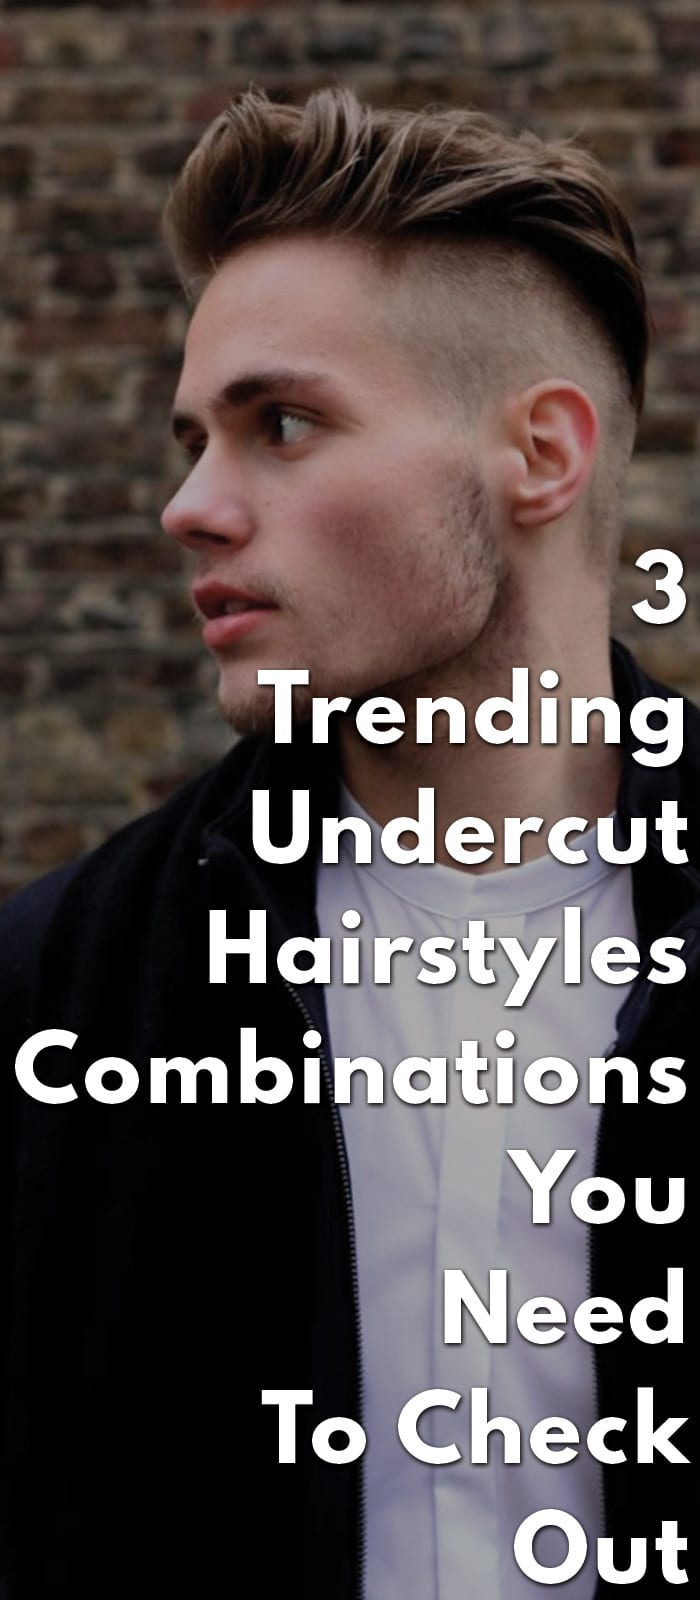 3-Trending-Undercut-Hairstyles-Combinations-You-Need-To-Check-Out